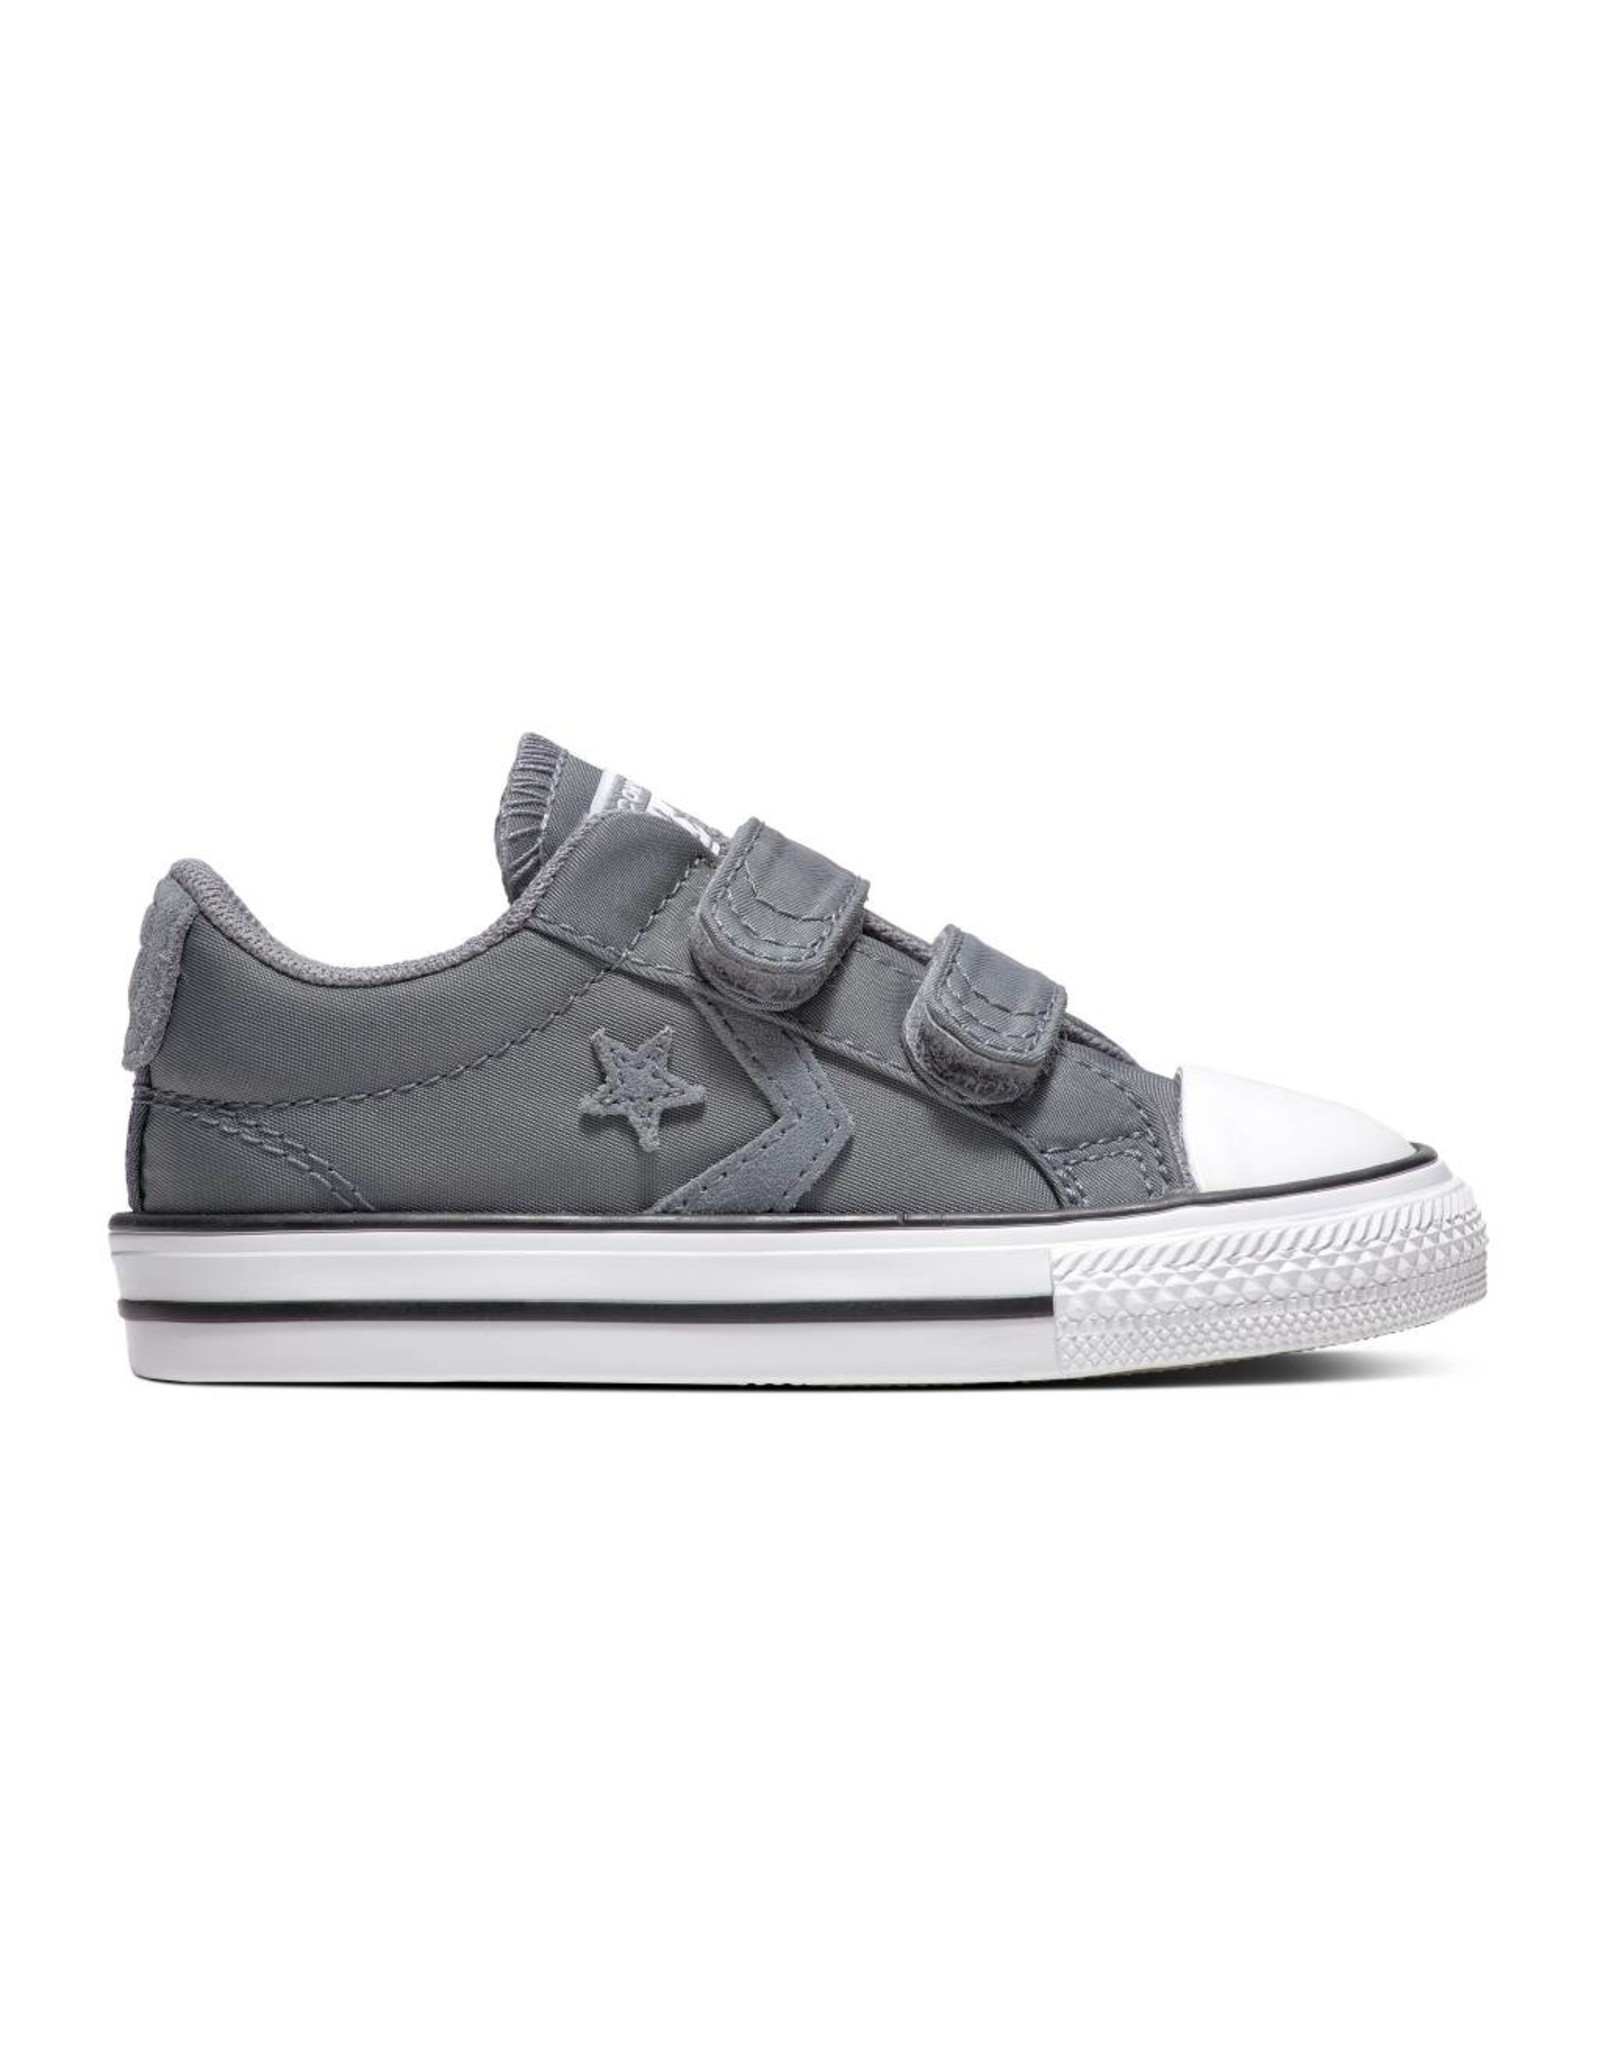 CONVERSE STAR PLAYER 2V OX COOL GREY/COOL GREY CK86VC-763582C